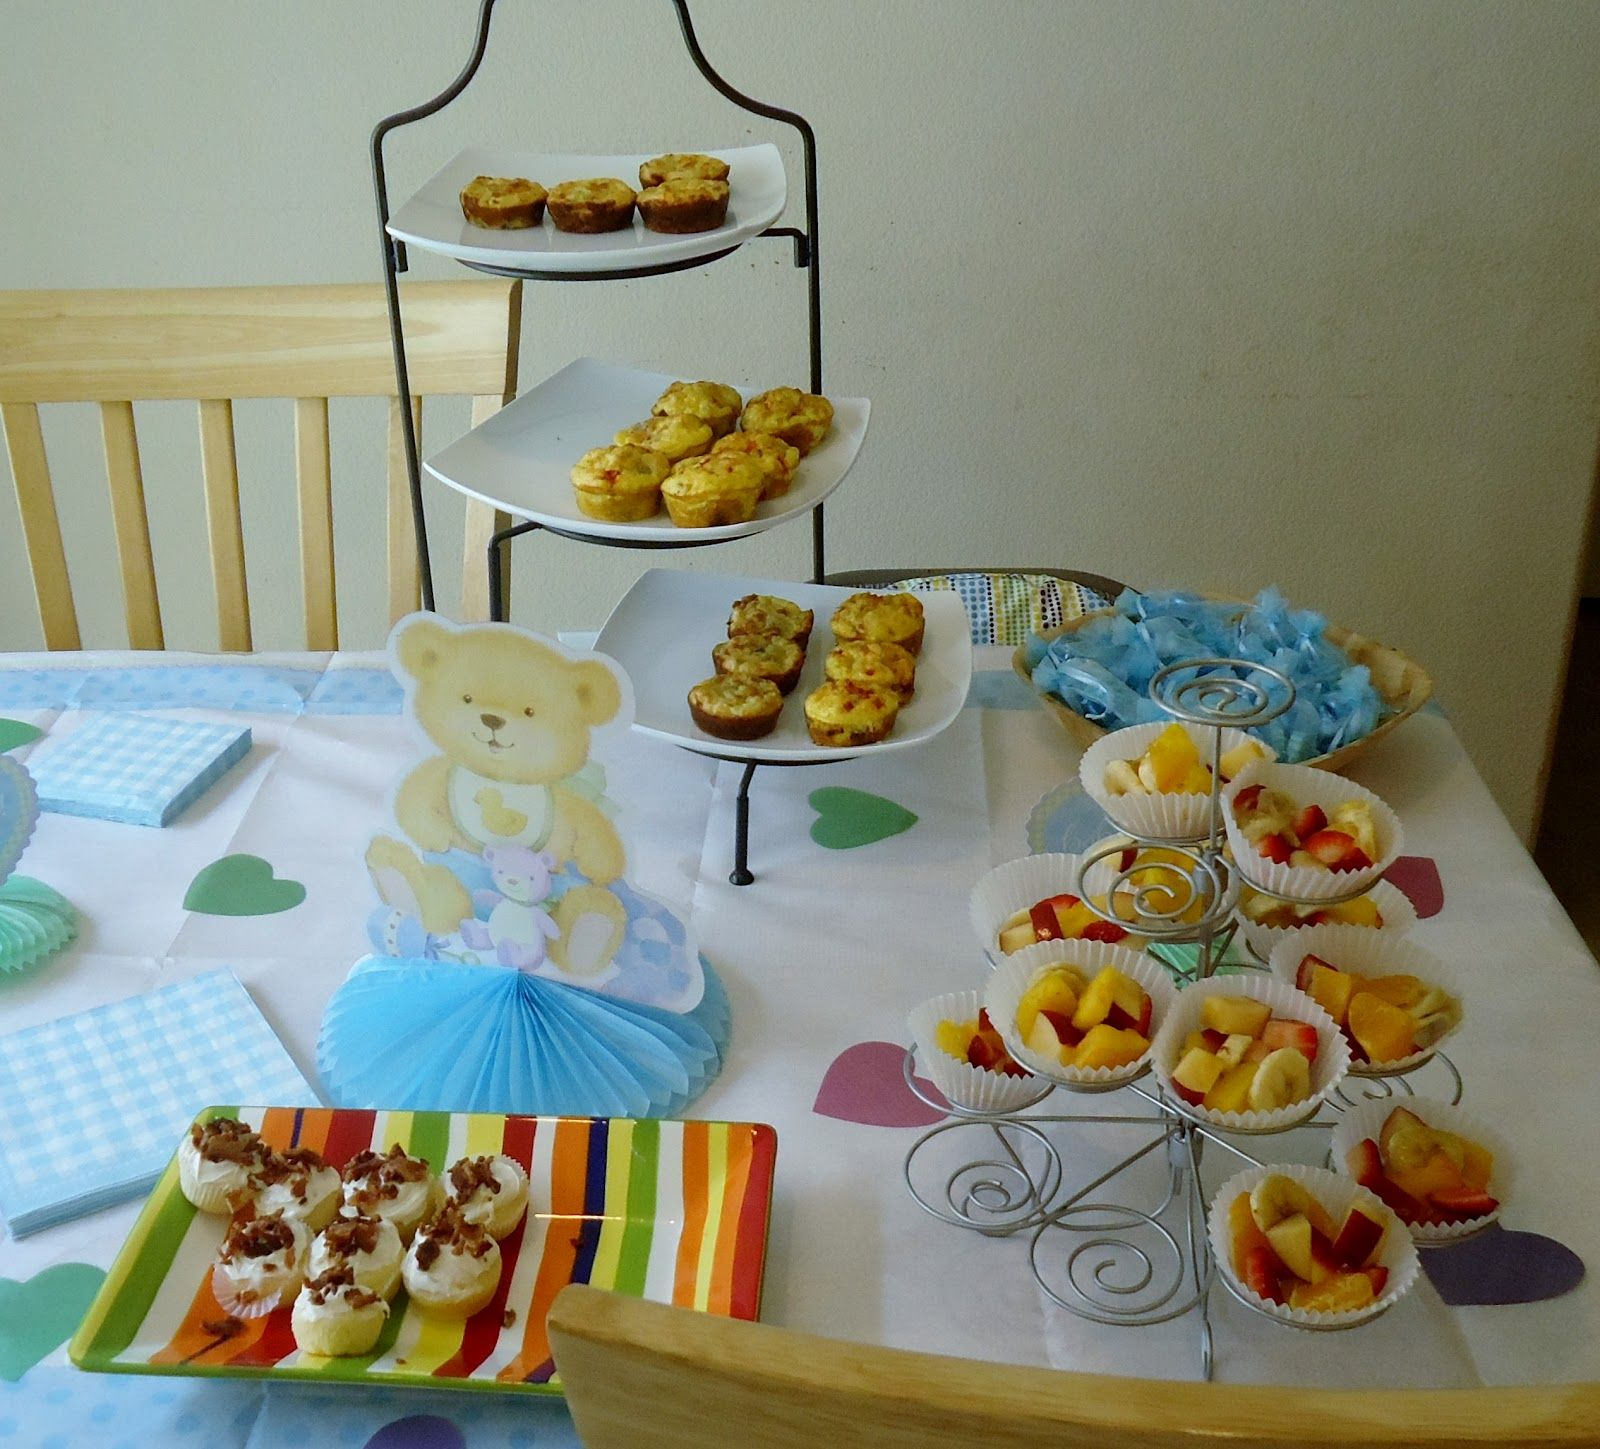 Baby Girl Baby Shower Food Ideas: Baby Shower Ideas For Girls On A Budget